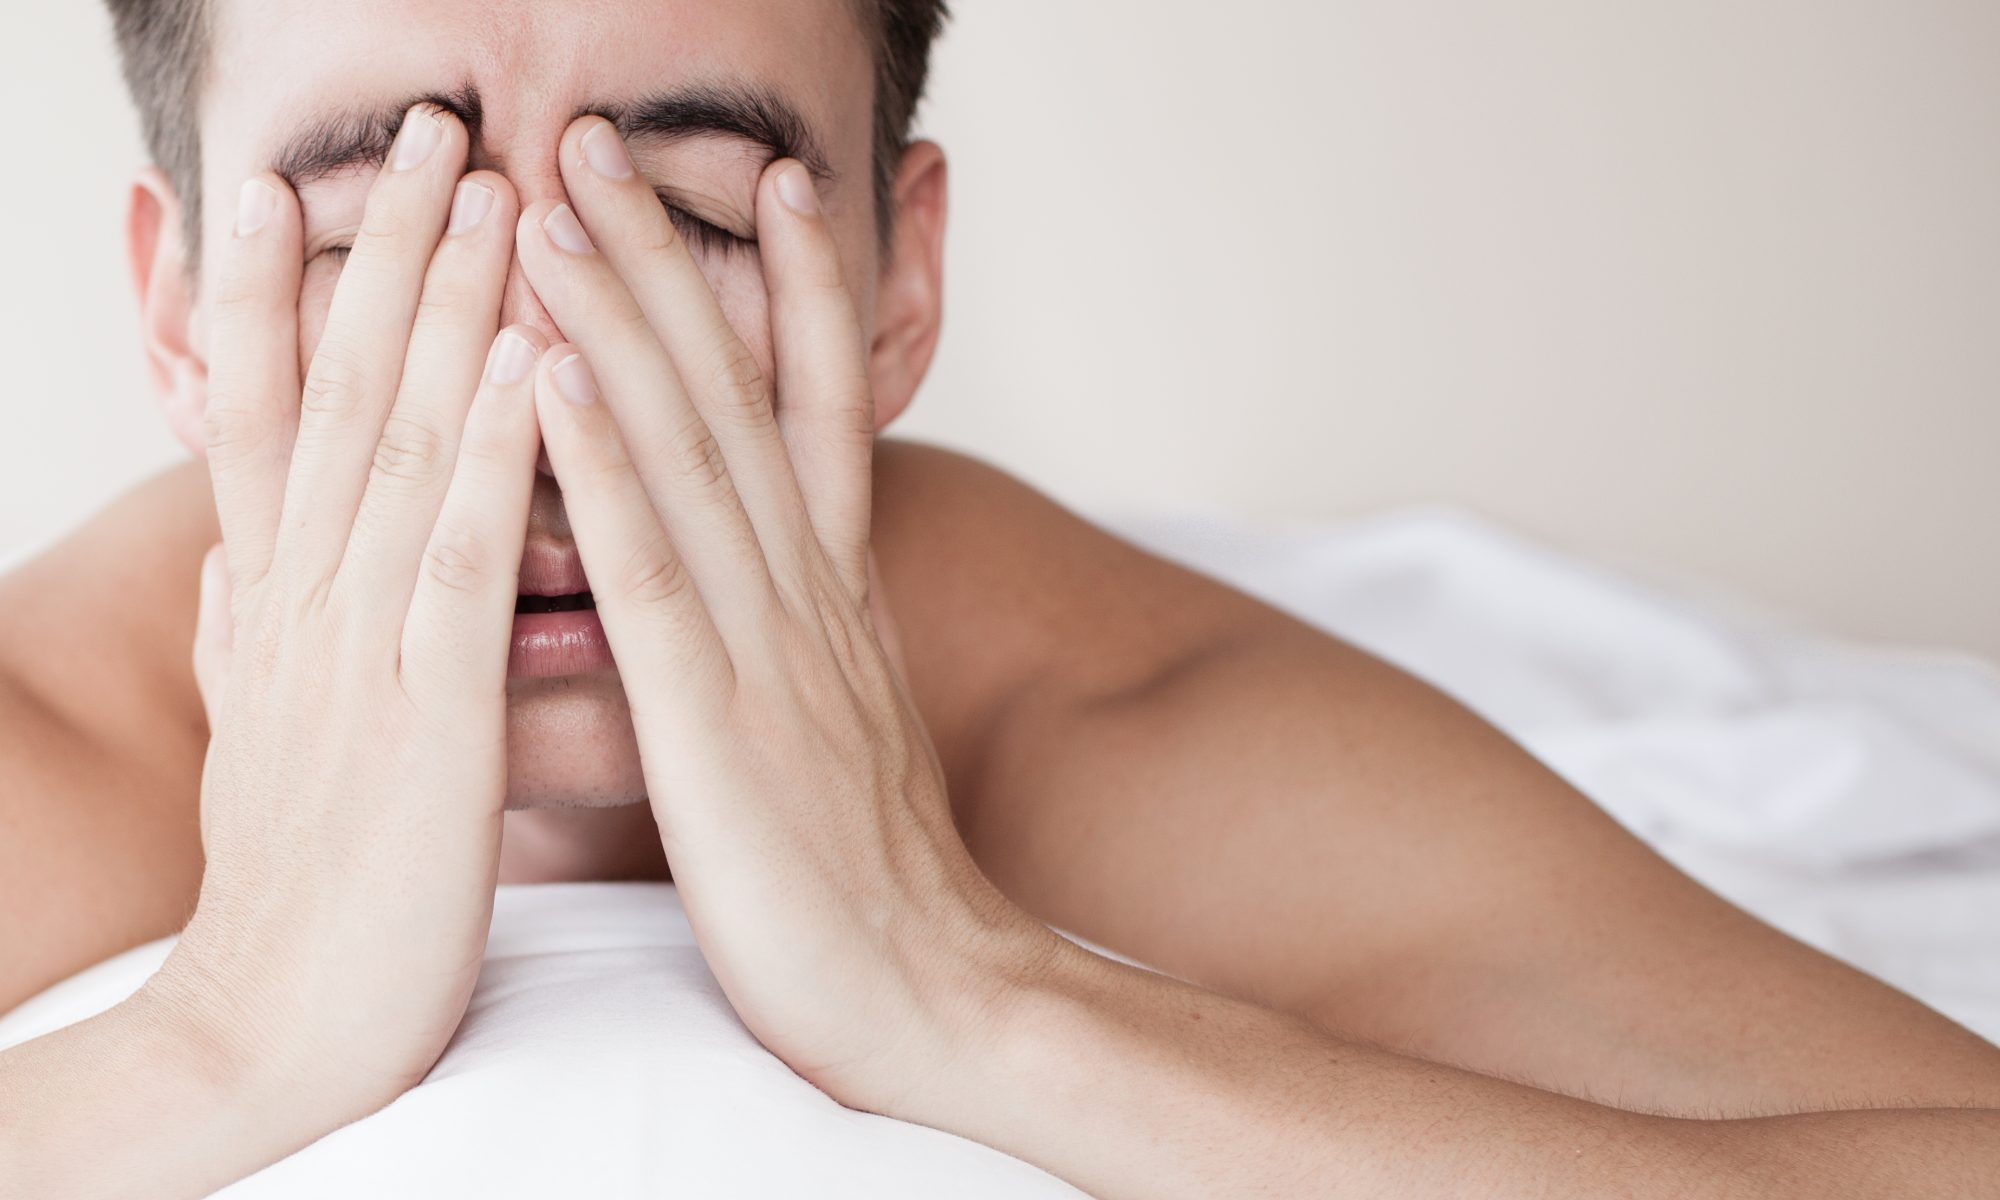 How does sleep deprivation affect you?